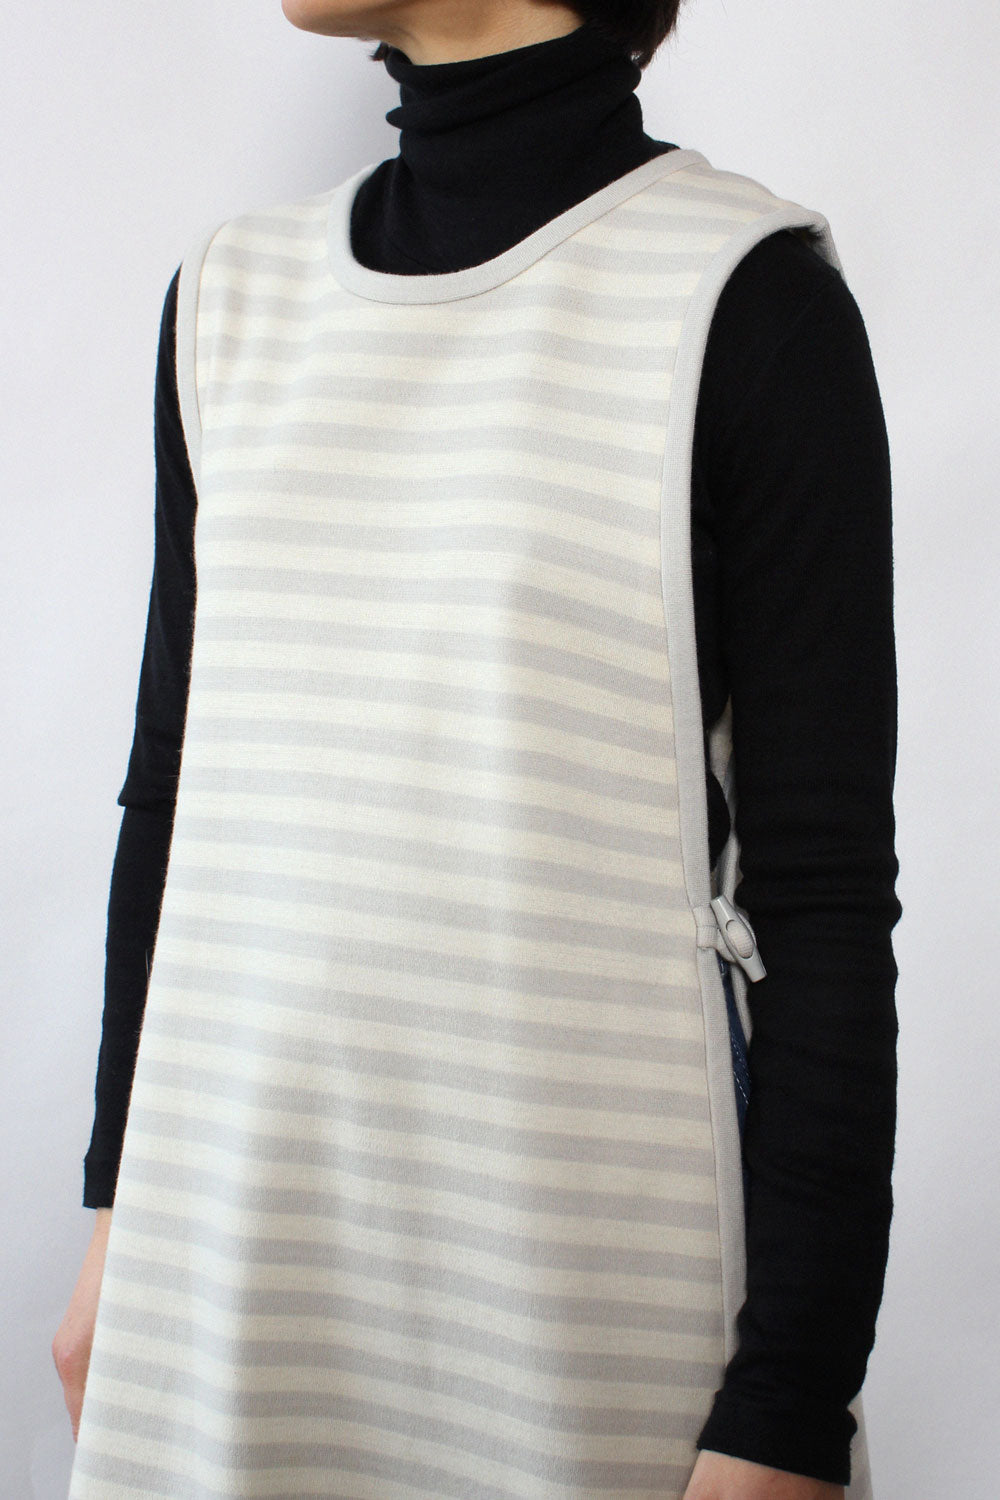 Heather Striped Tabard Dress S/M